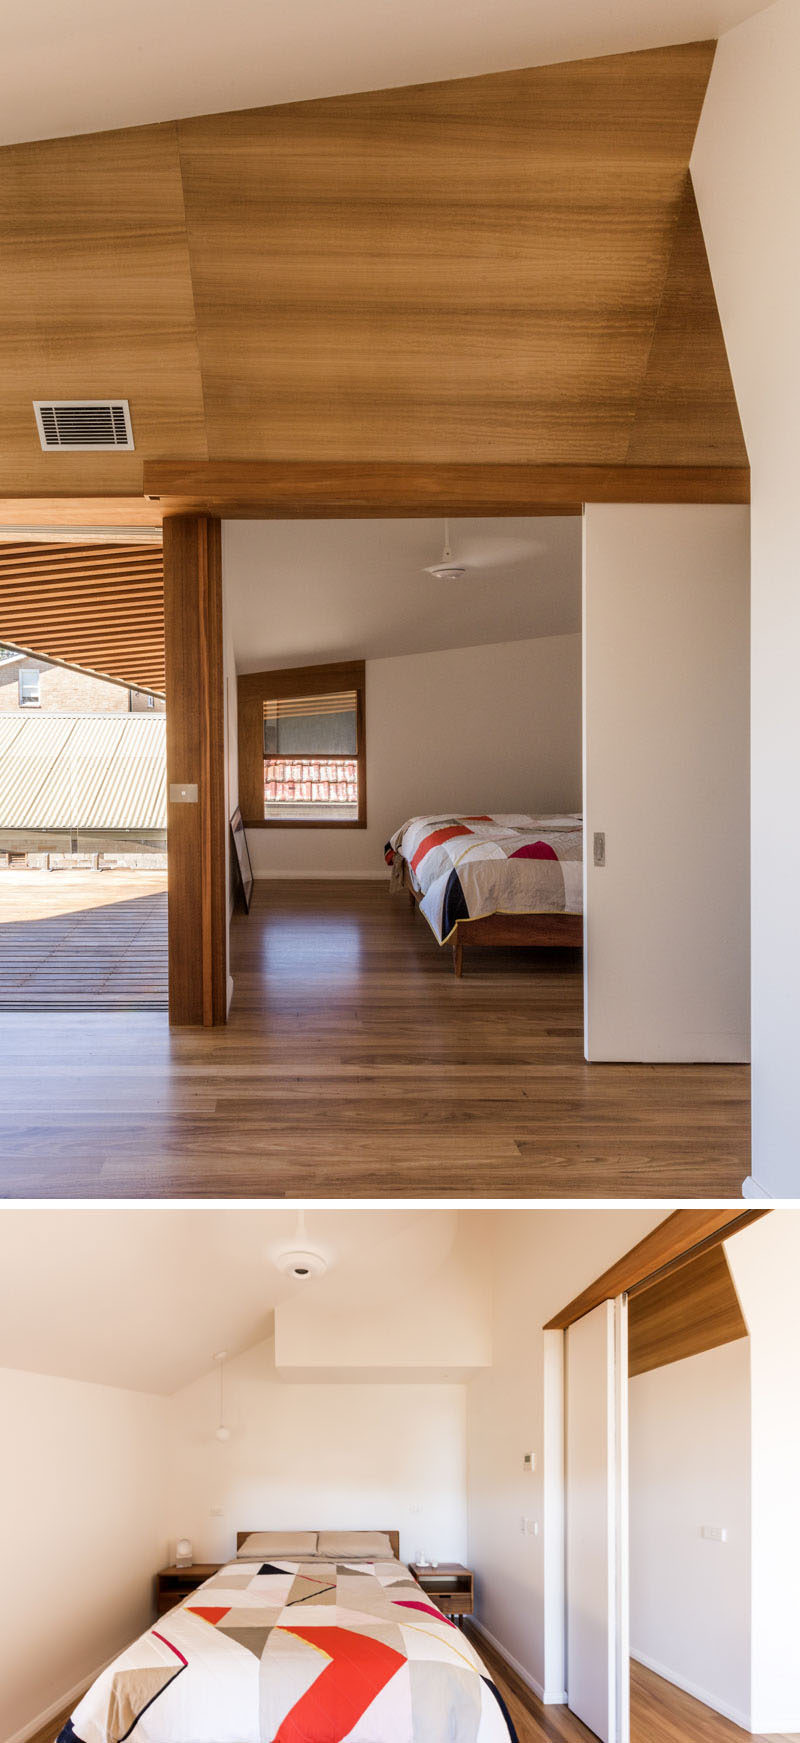 This bedroom has a large sliding door.